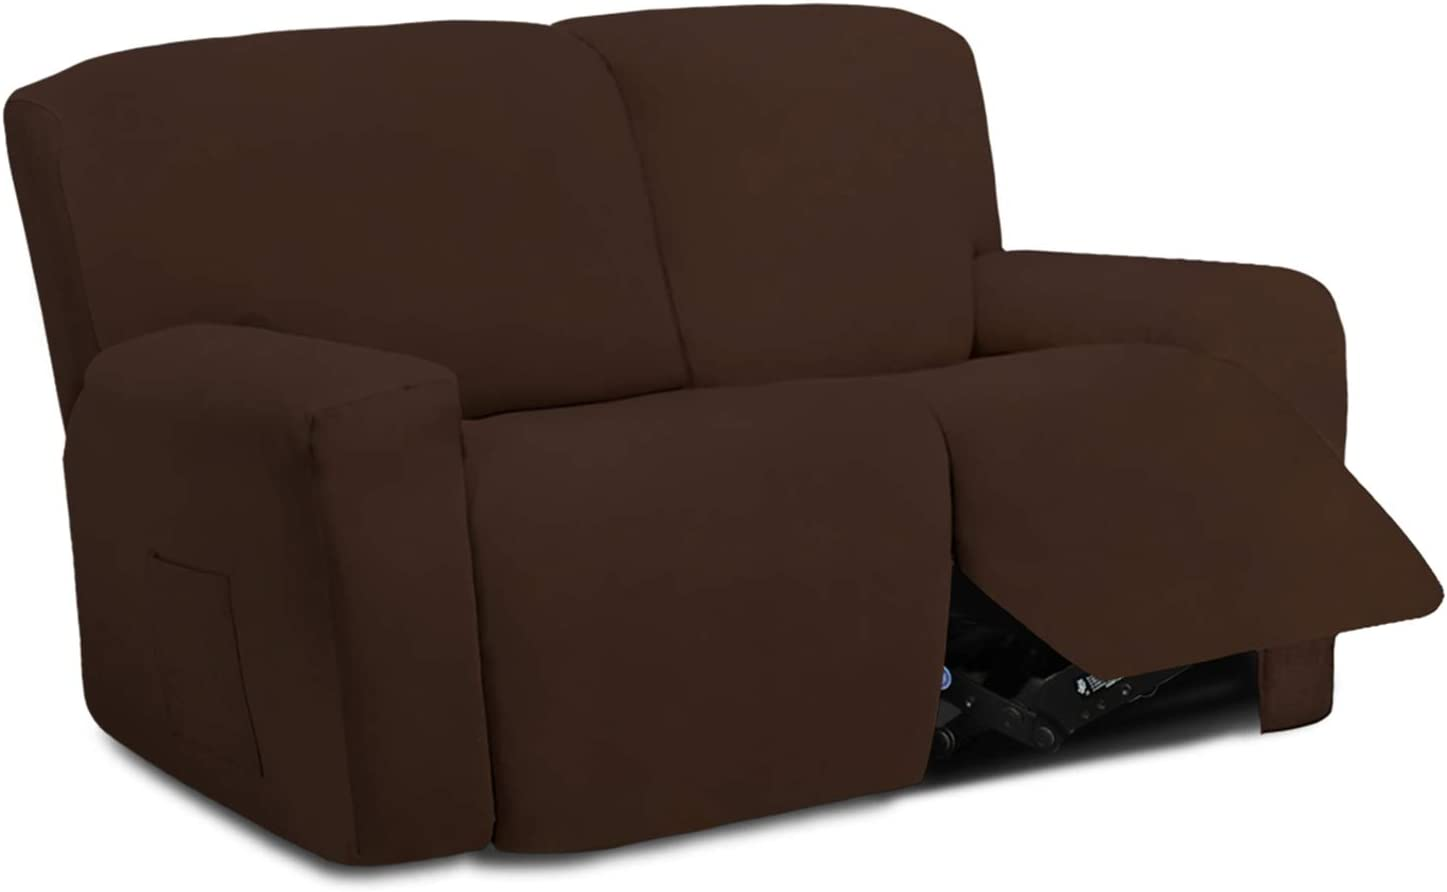 Easy-Going 6 Pieces Microfiber Stretch Sectional Recliner Sofa Slipcover Soft Fitted Fleece 2 Seats Couch Cover Washable Furniture Protector with Elasticity for Kids Pet(Recliner Loveseat,Coffee)